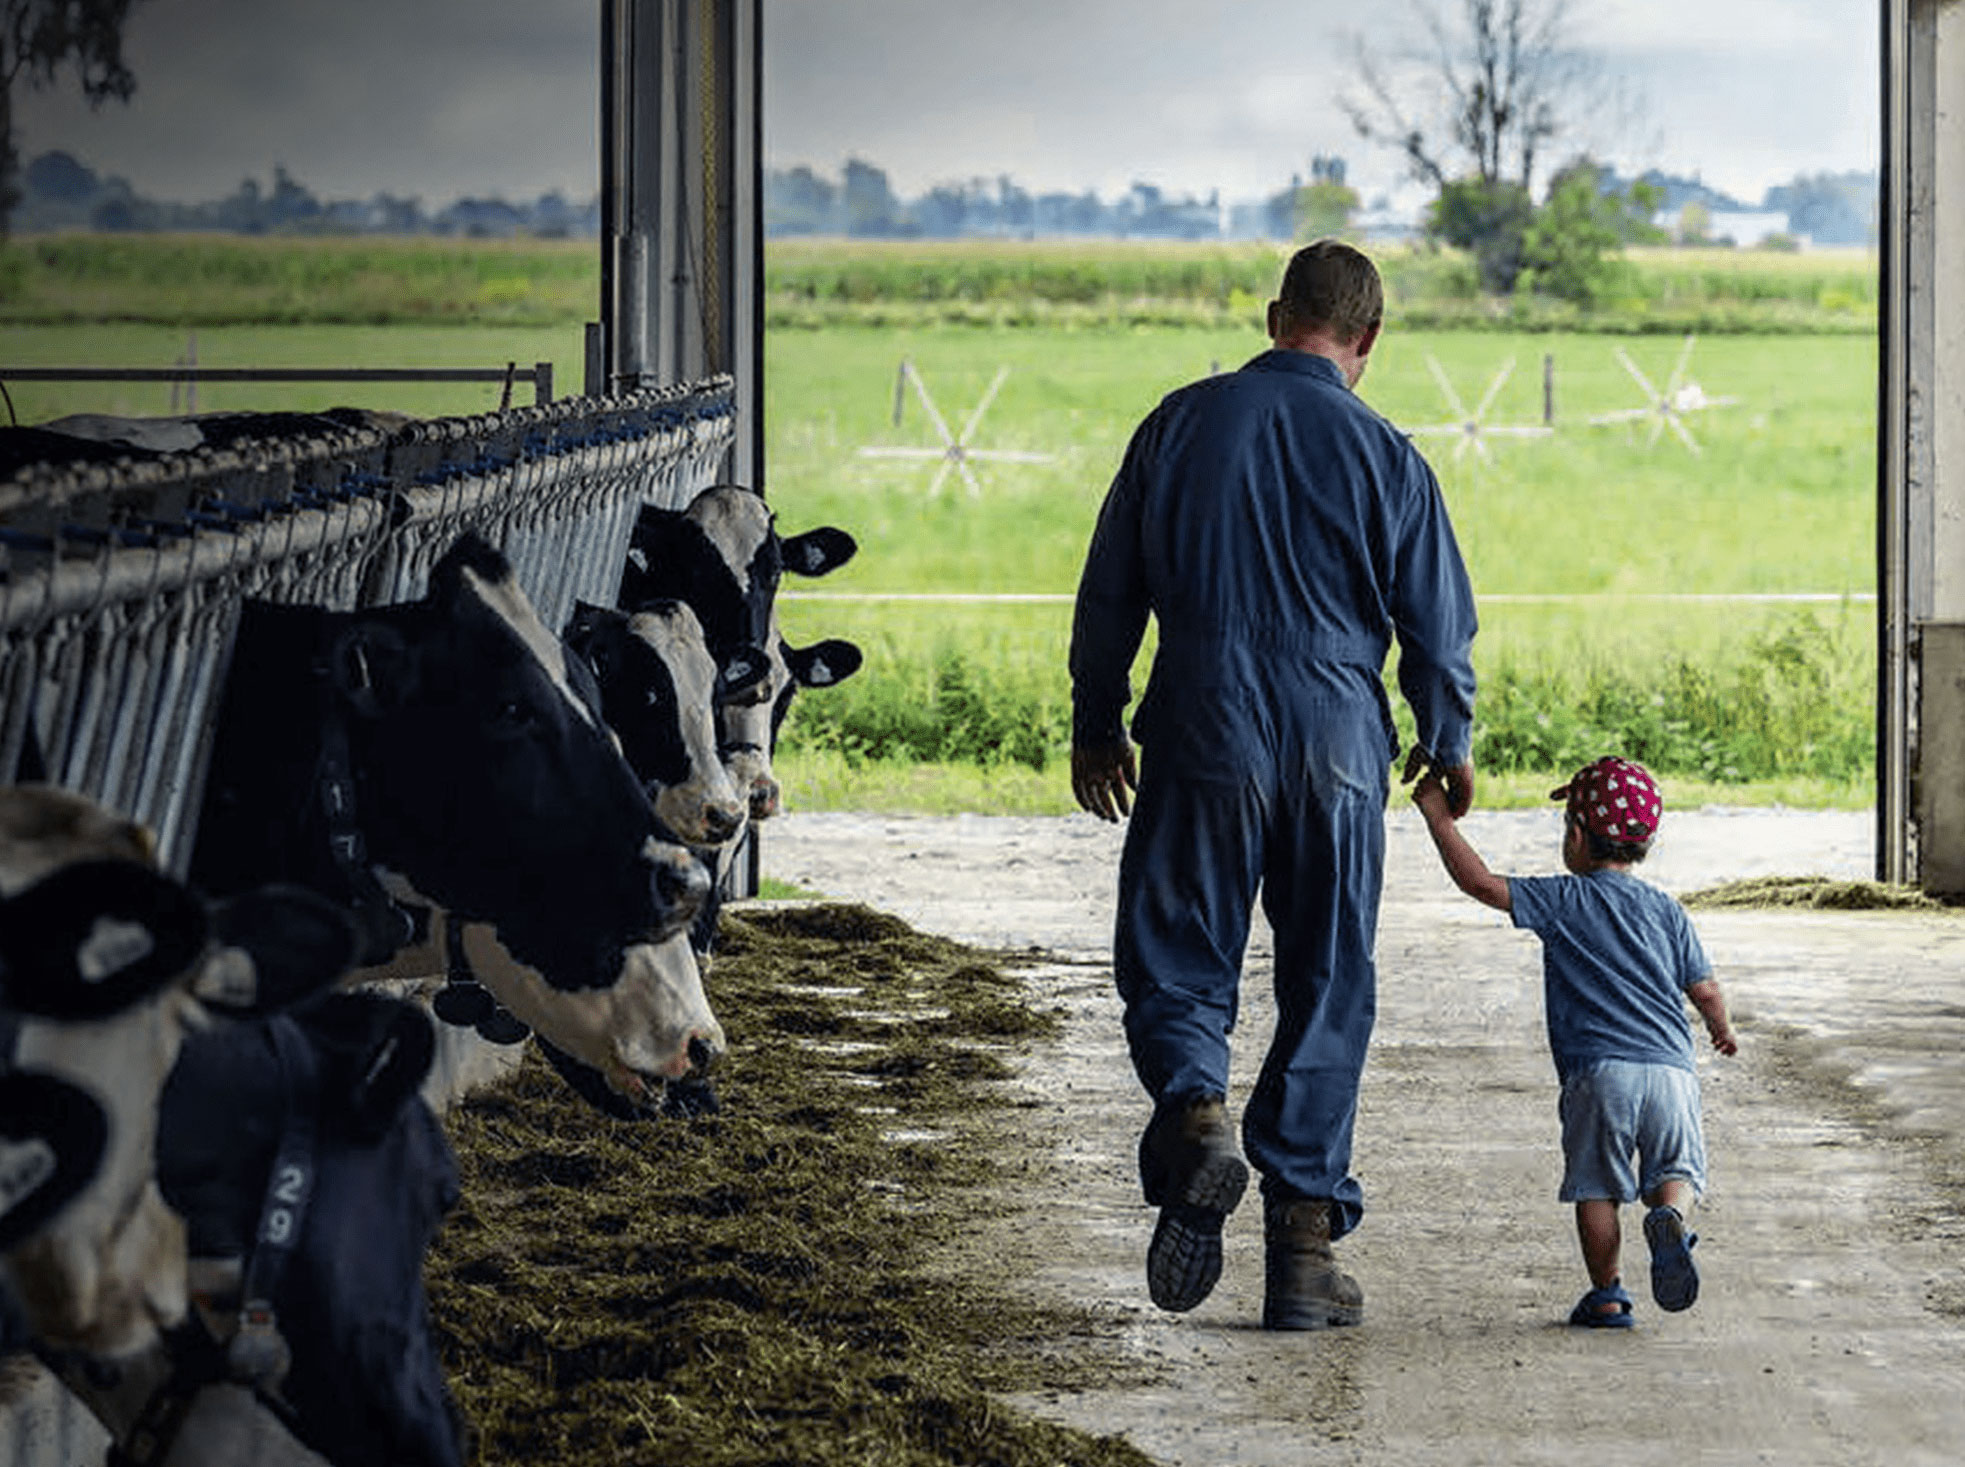 a farmer and a small child walk hand in hand through a barn